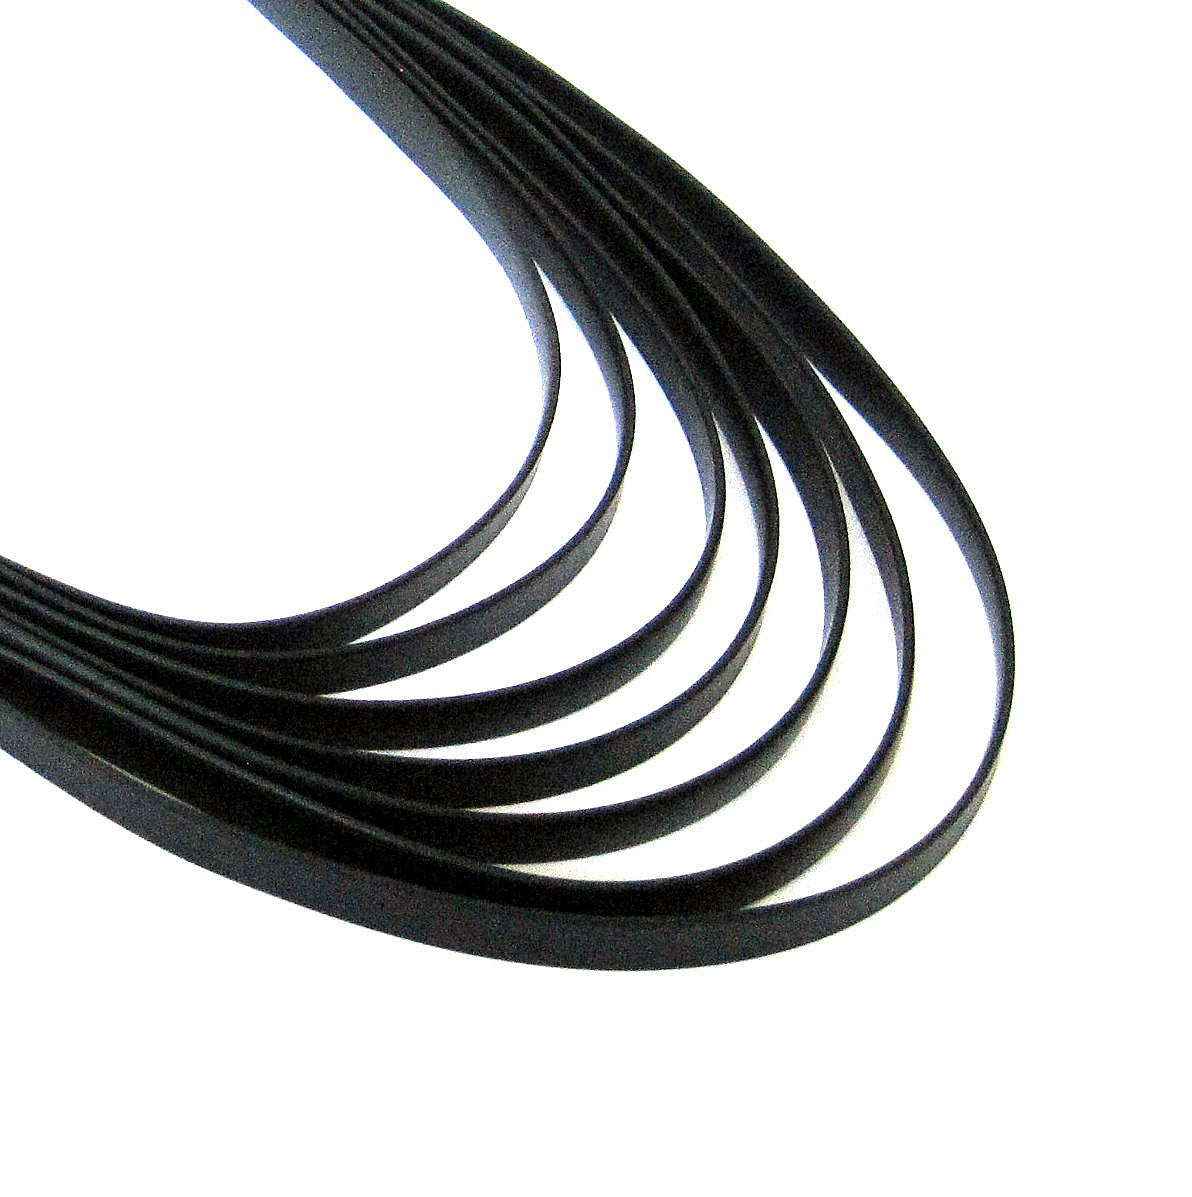 rubber necklace with 7 strips